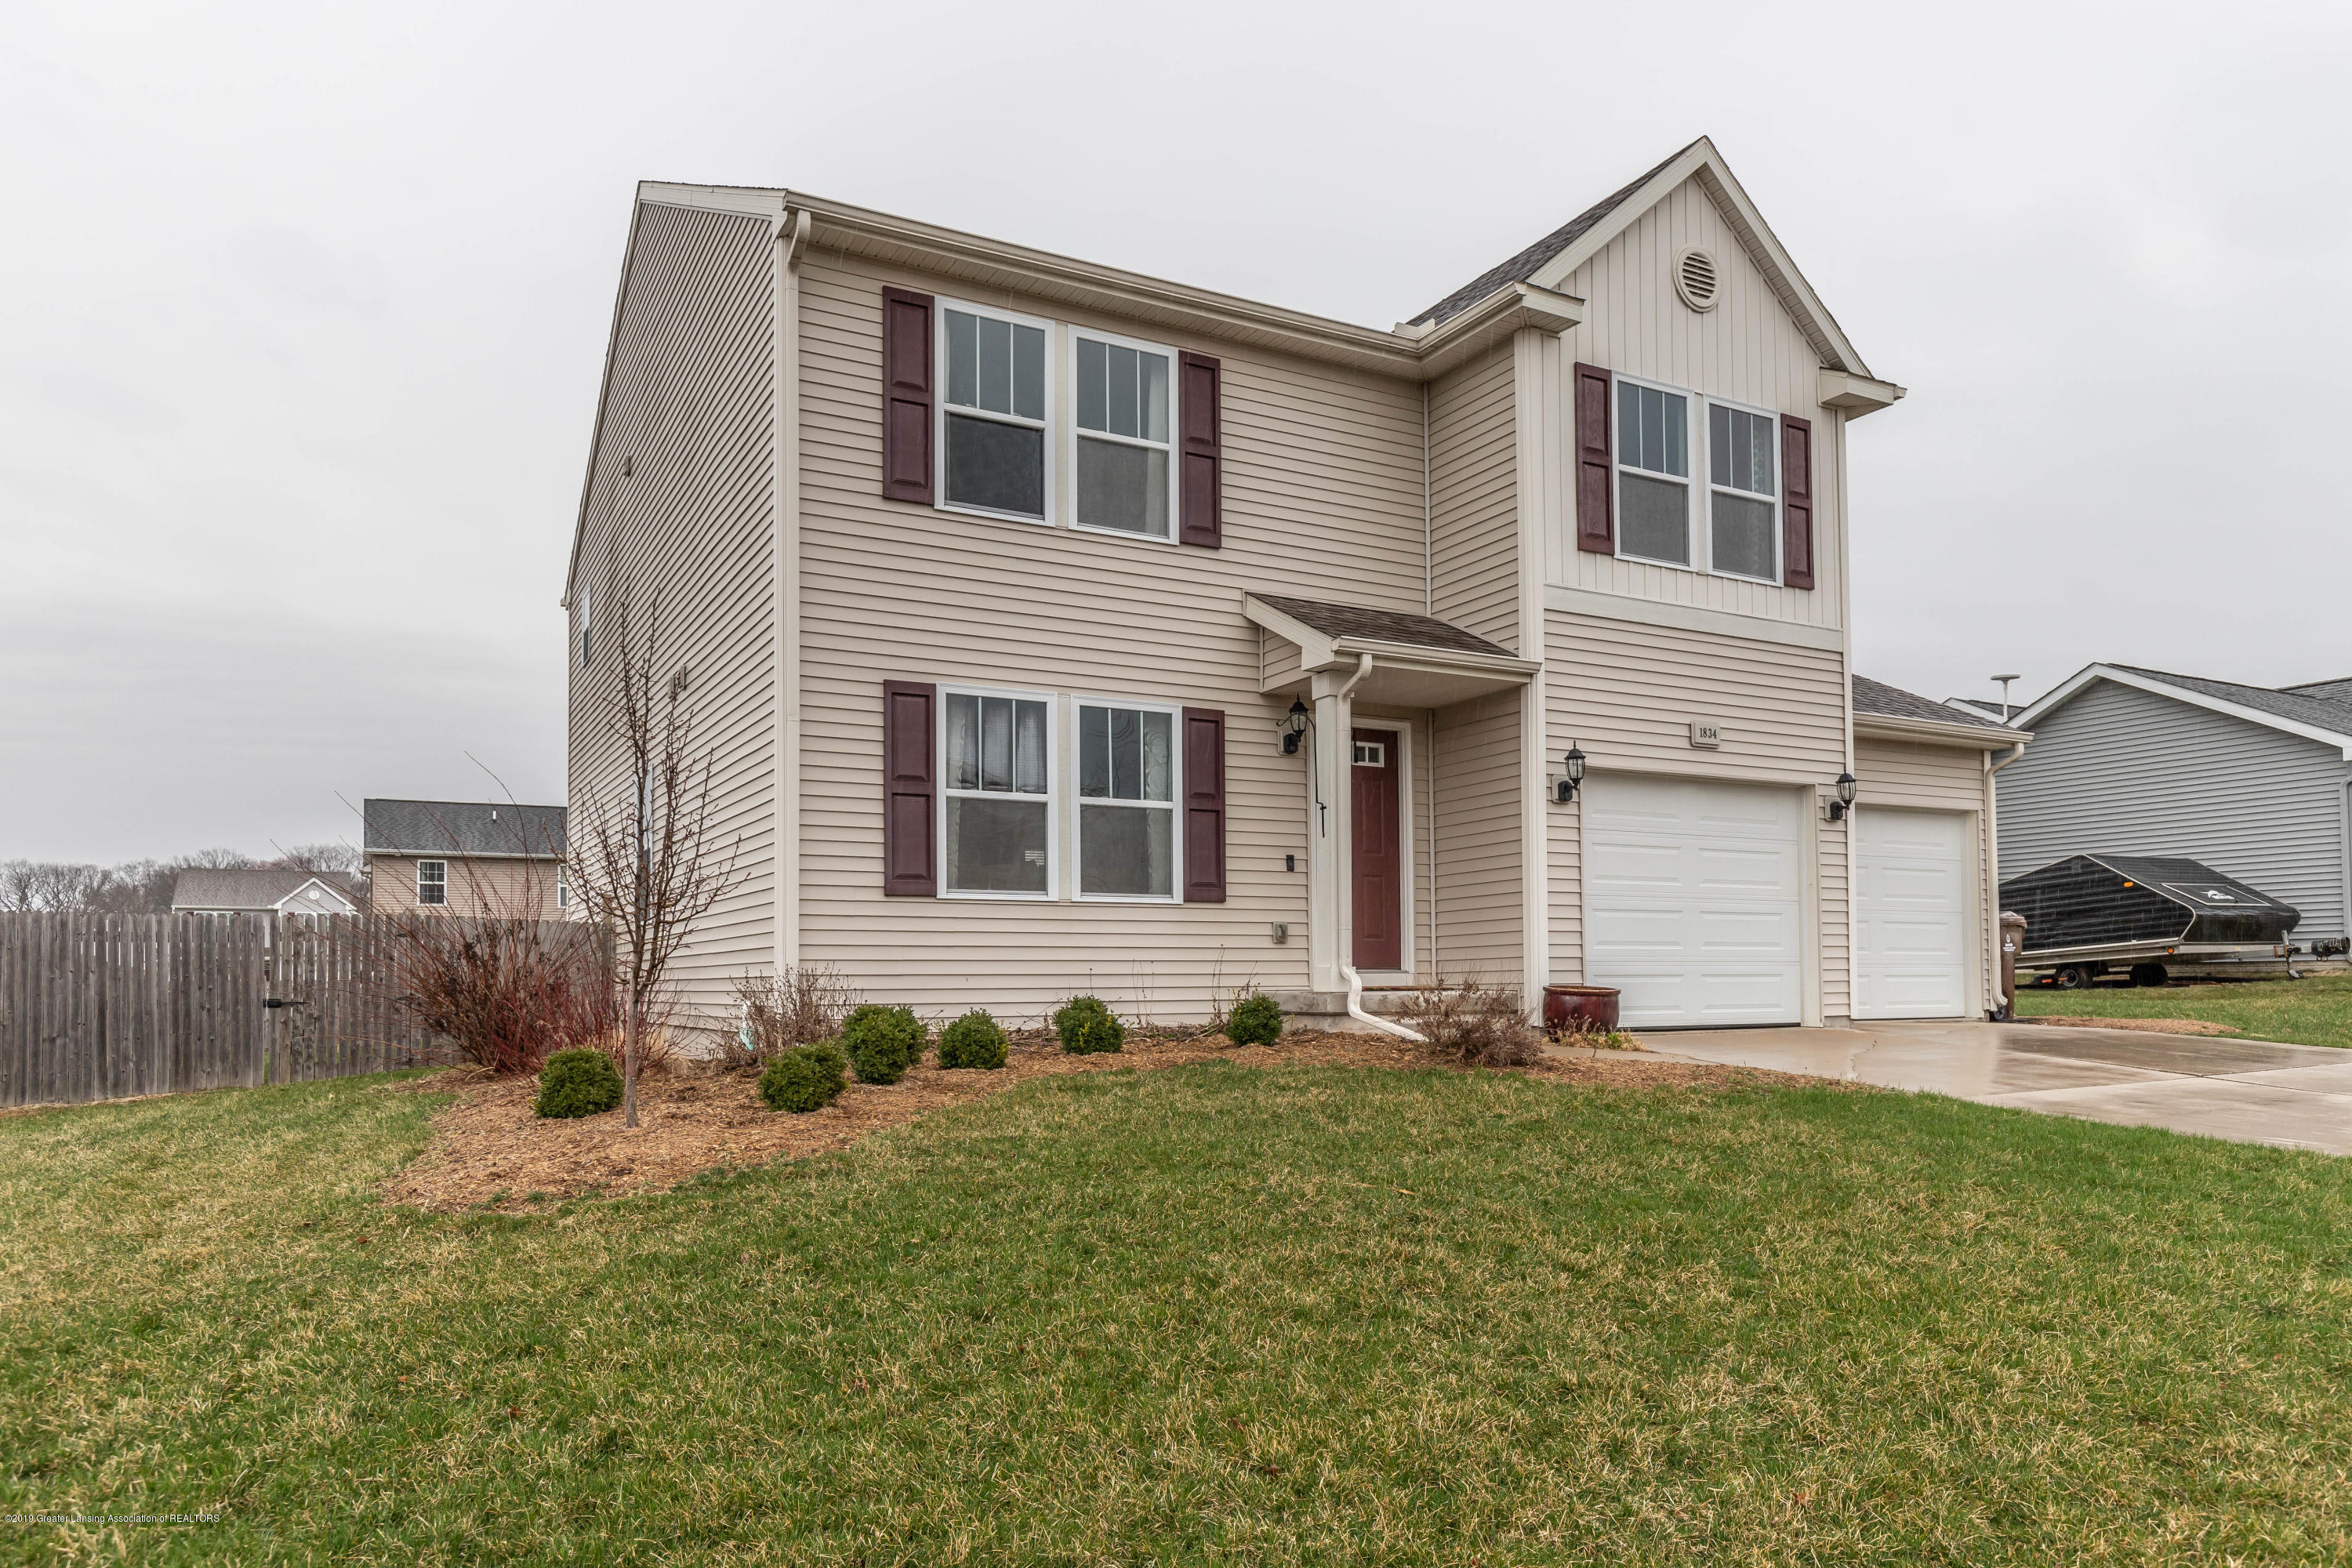 1834 Nightingale Dr - nightinggalefront4 (1 of 1) - 30